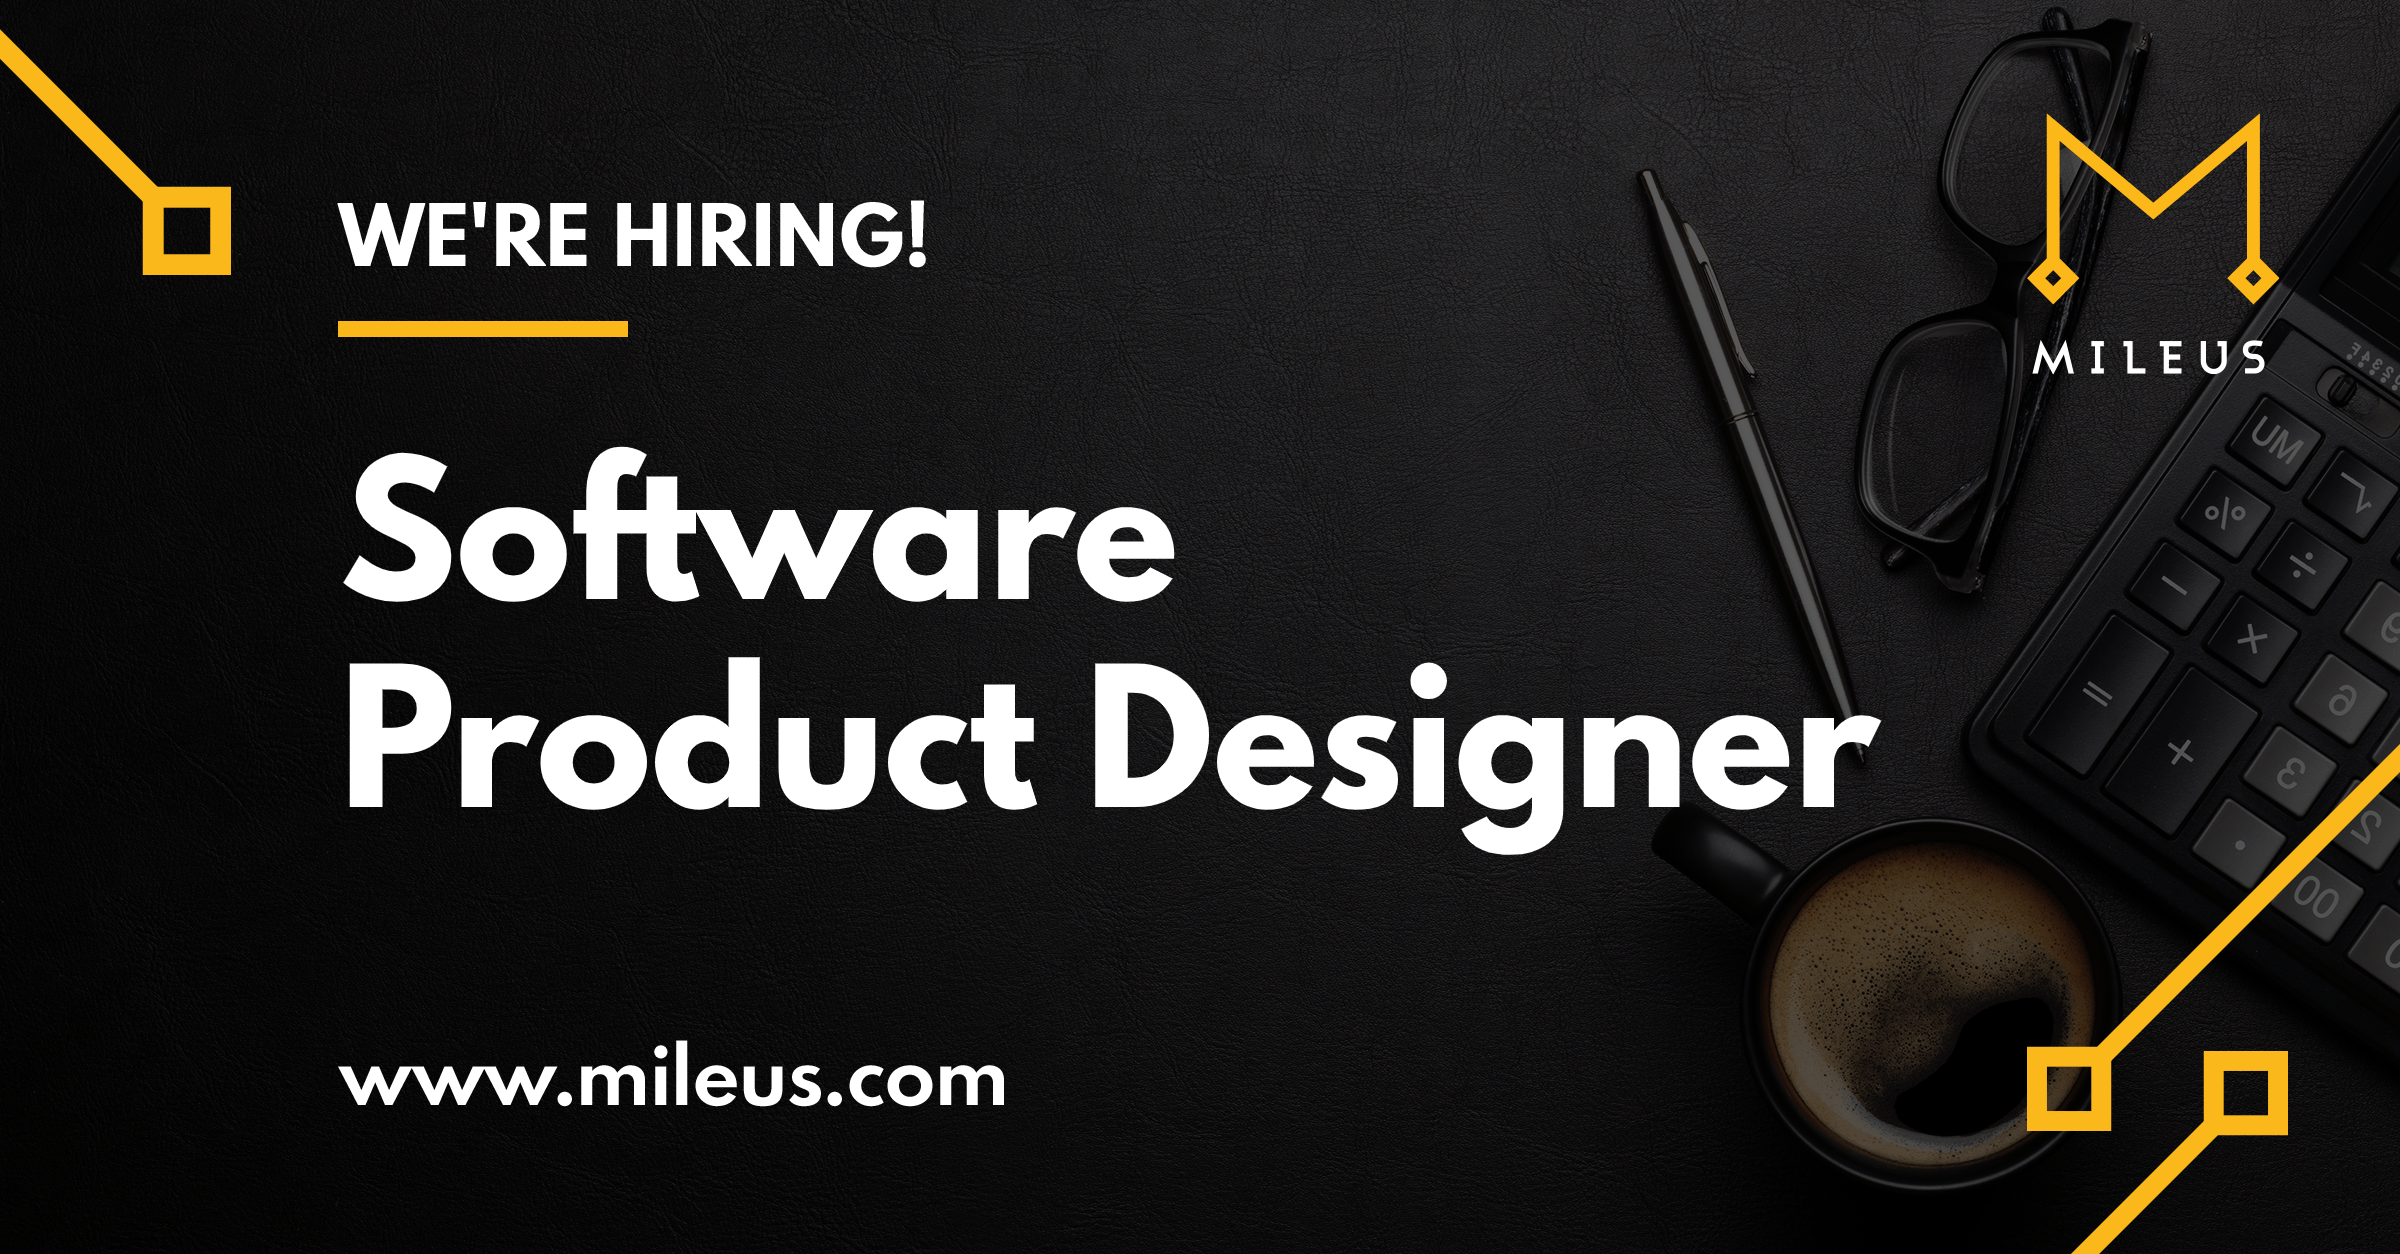 Hiring graphic image for the role of Software Product Designer